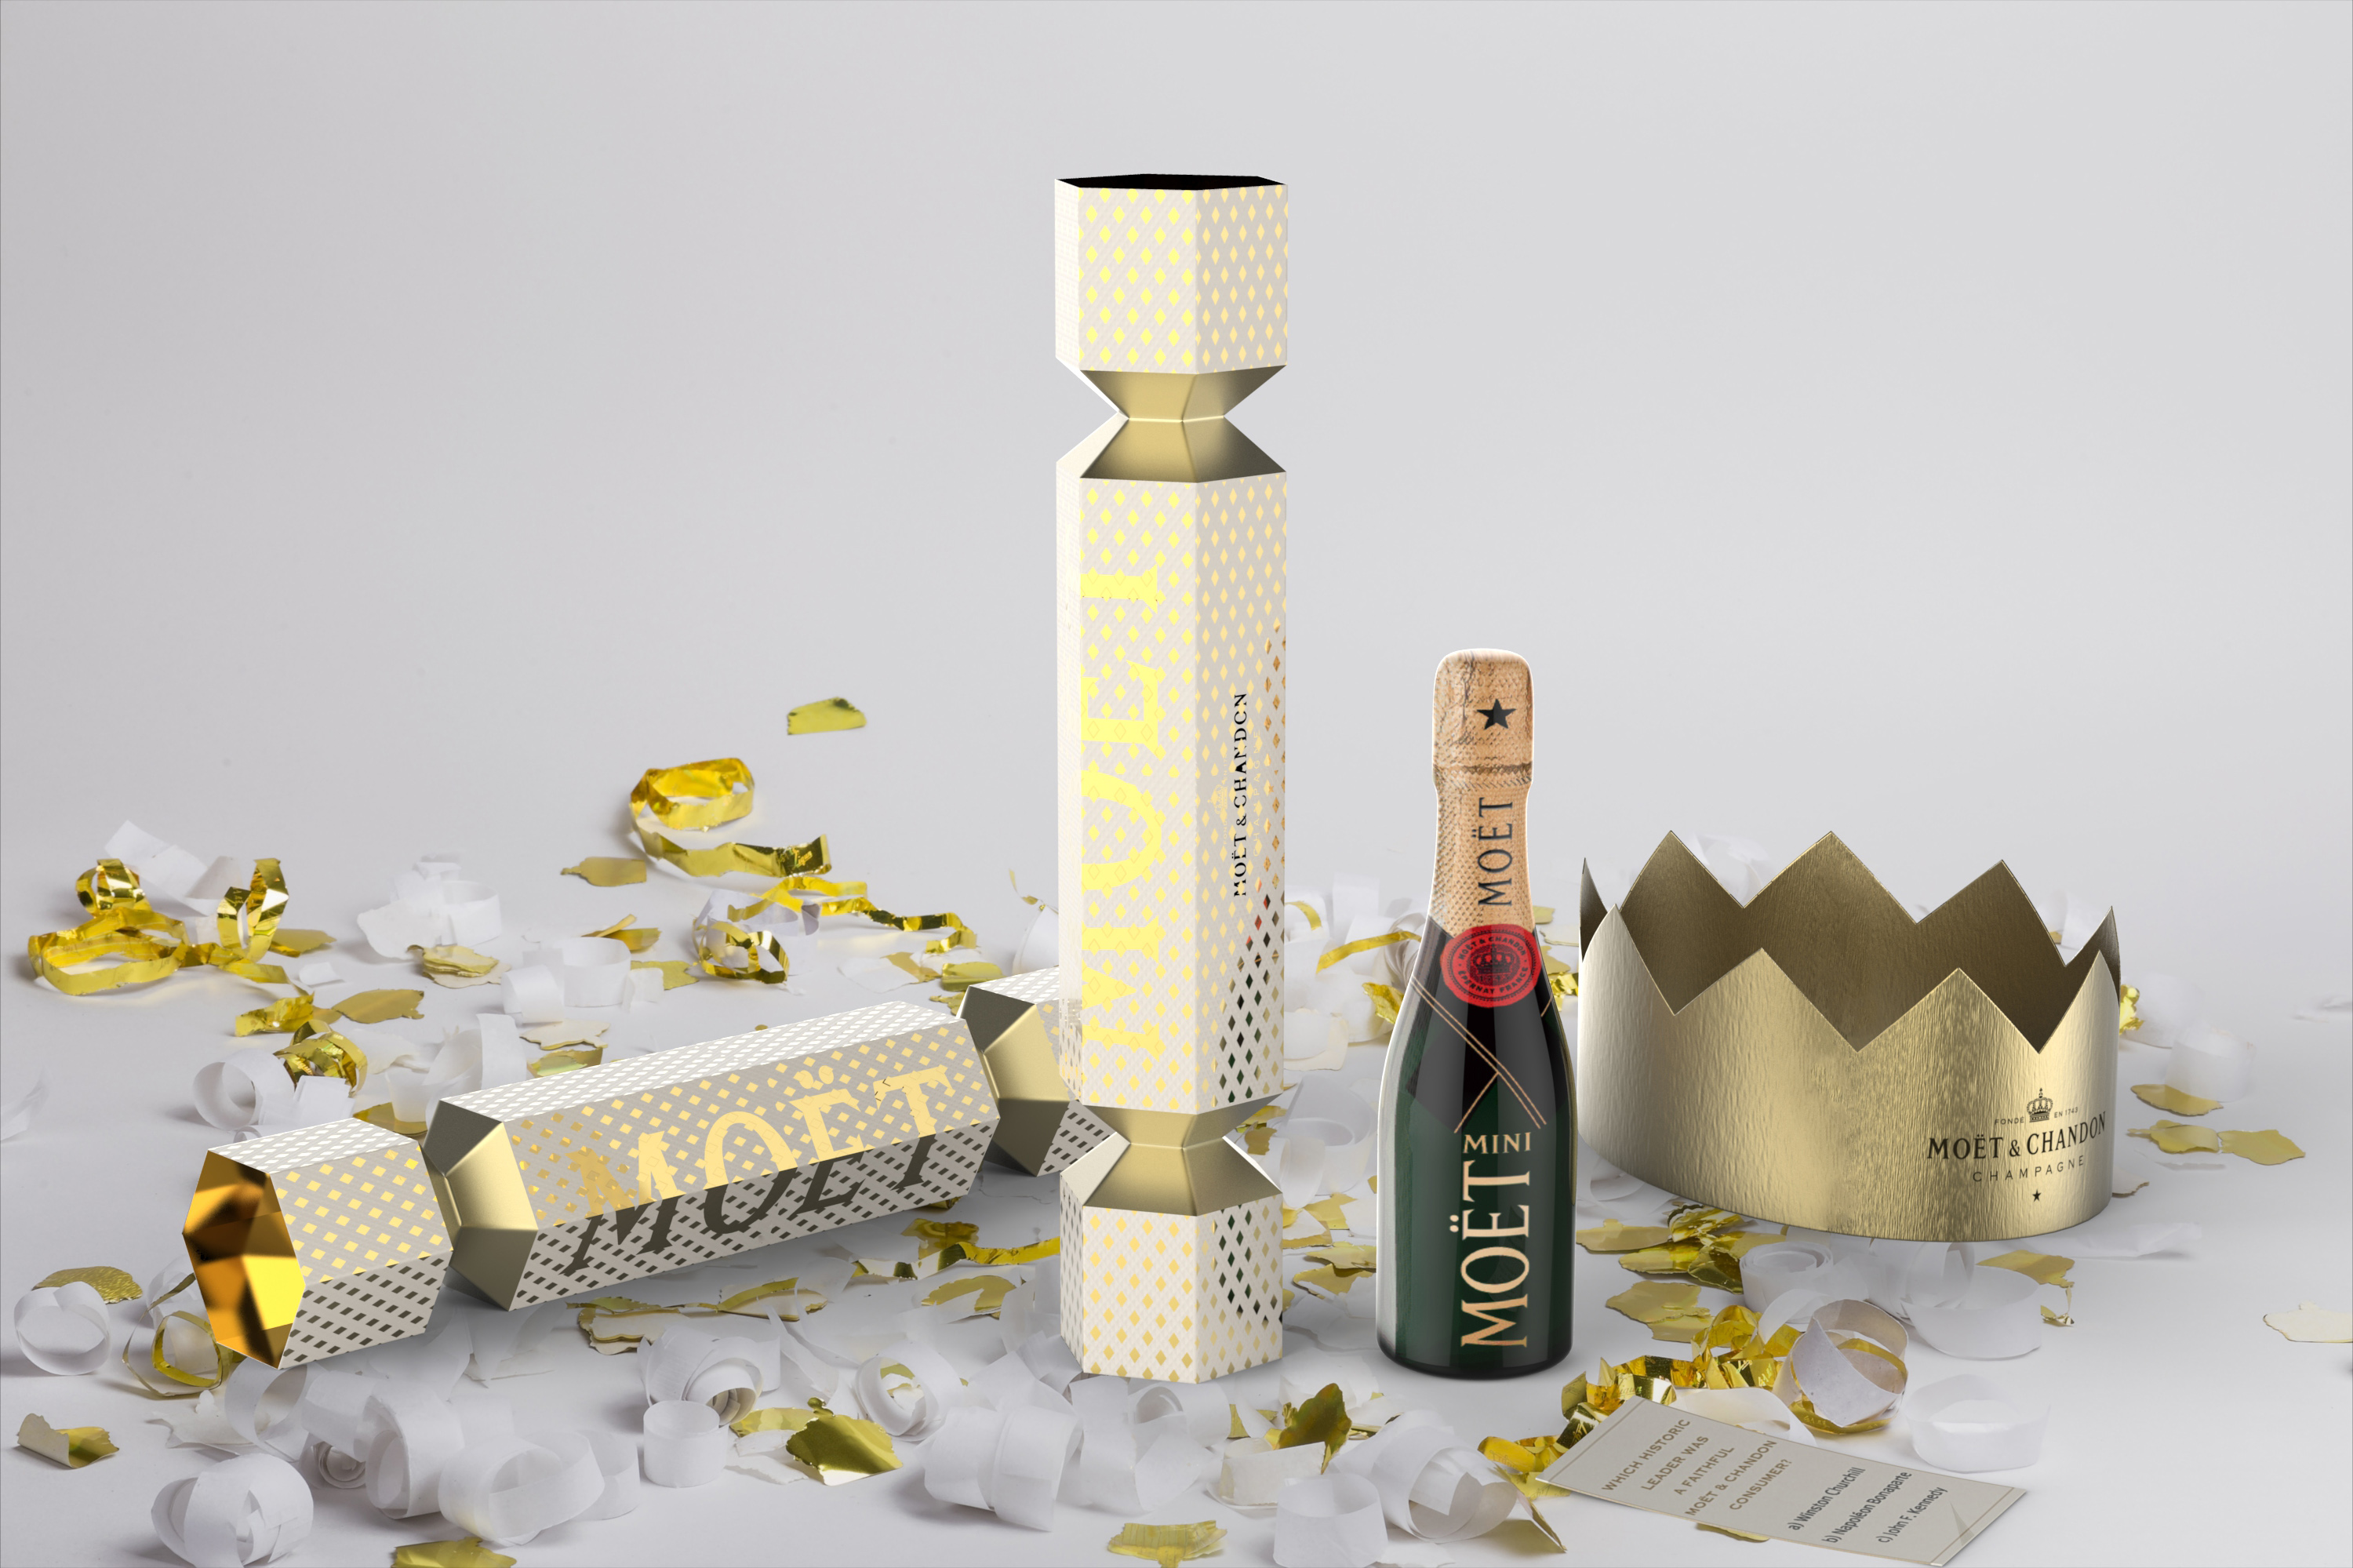 mini moet blanc cracker